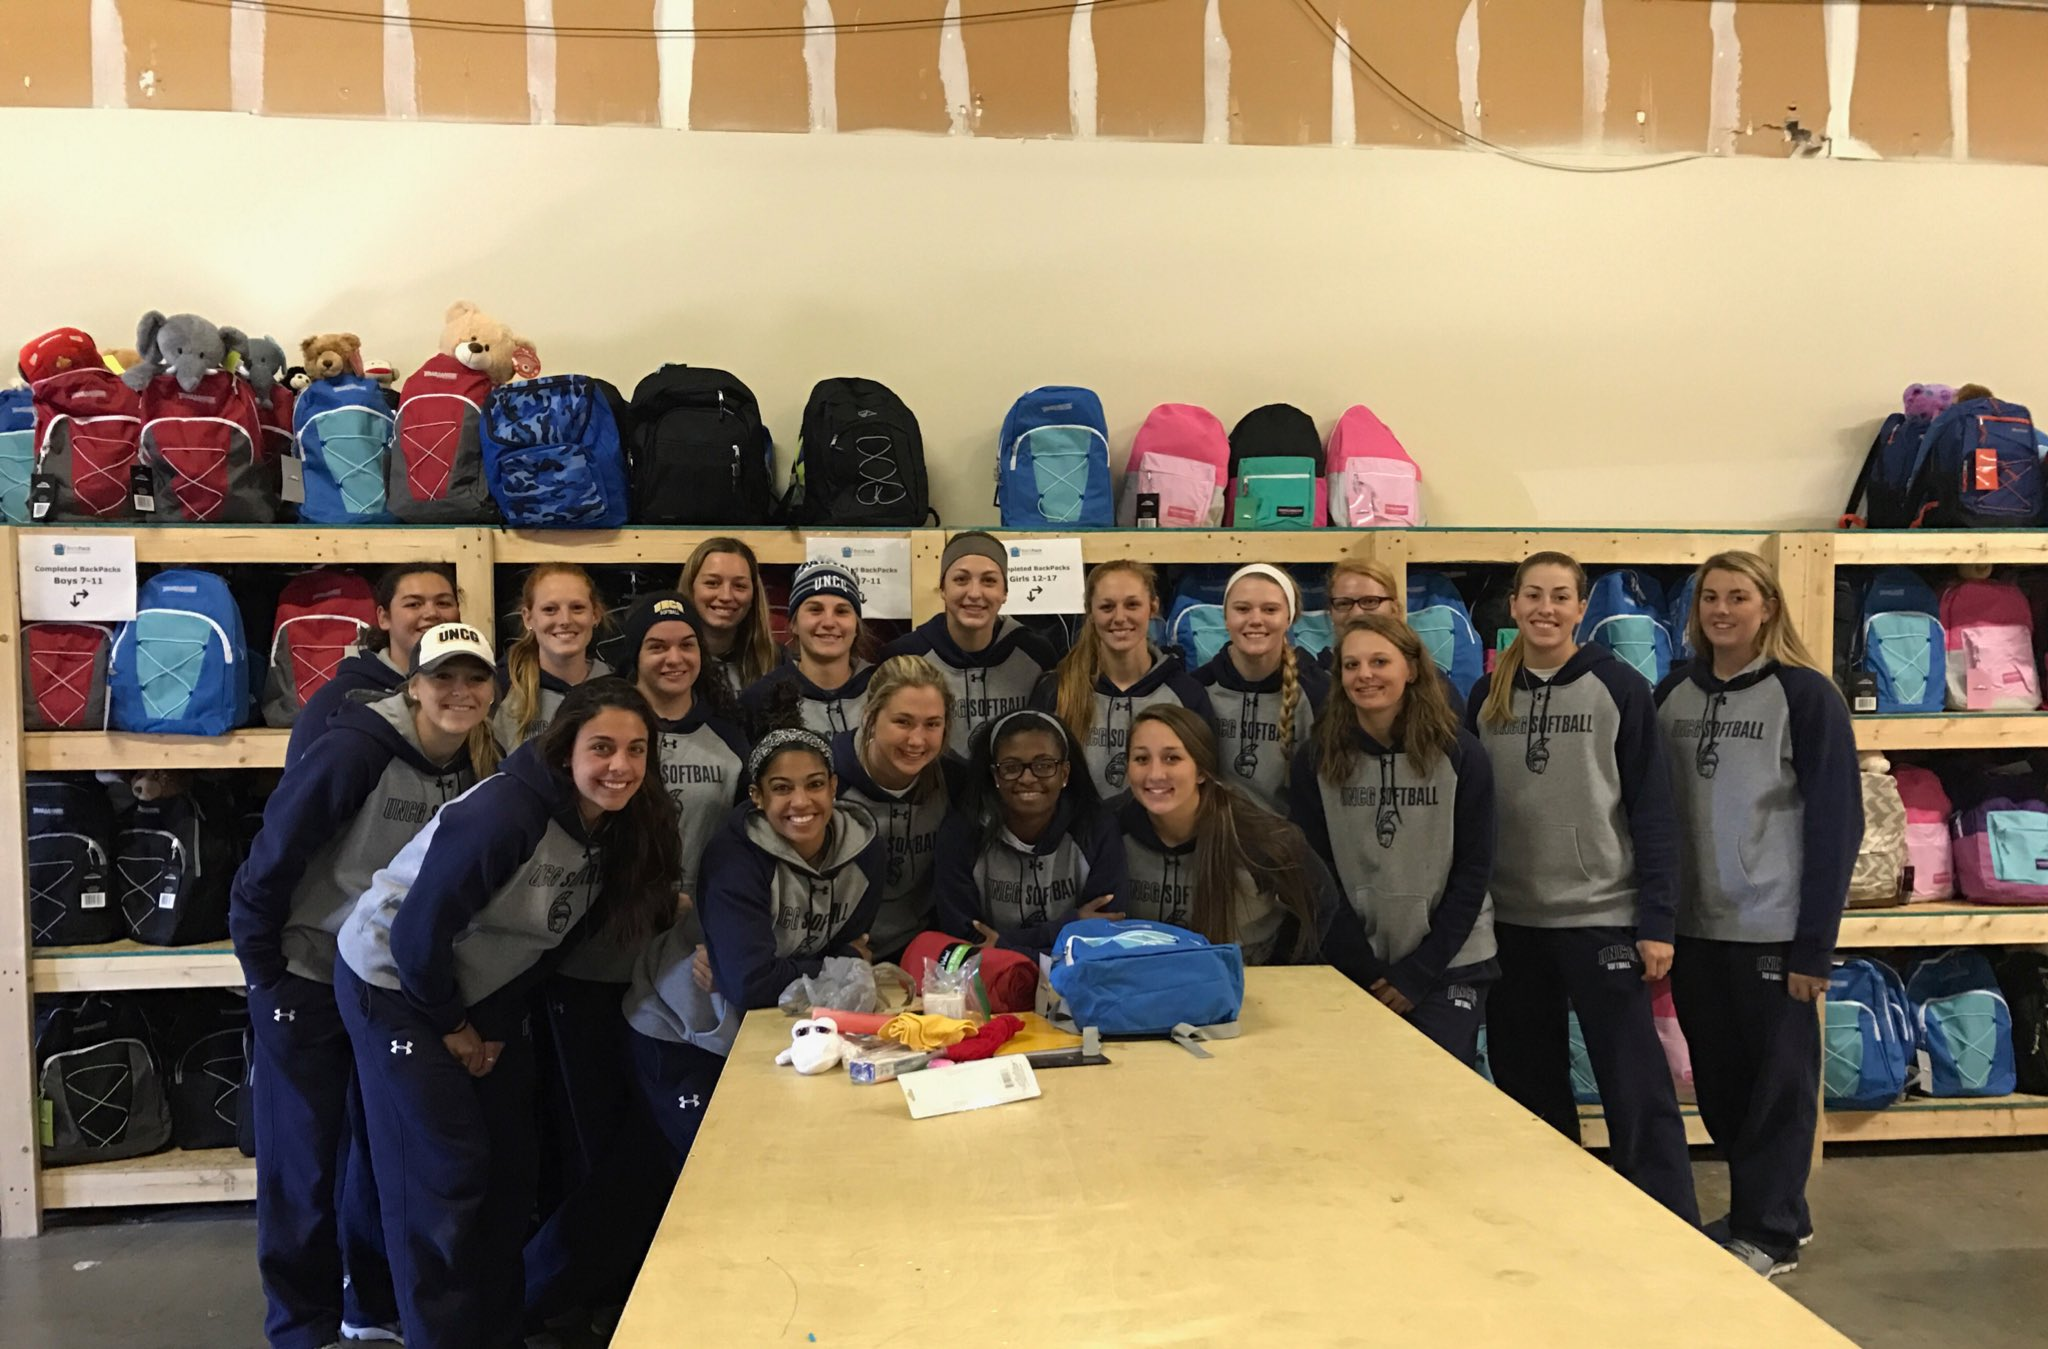 Thank you @BackPackBegins for allowing us to join you this morning in serving our community! @uncgsports https://t.co/CONkLyIPNn